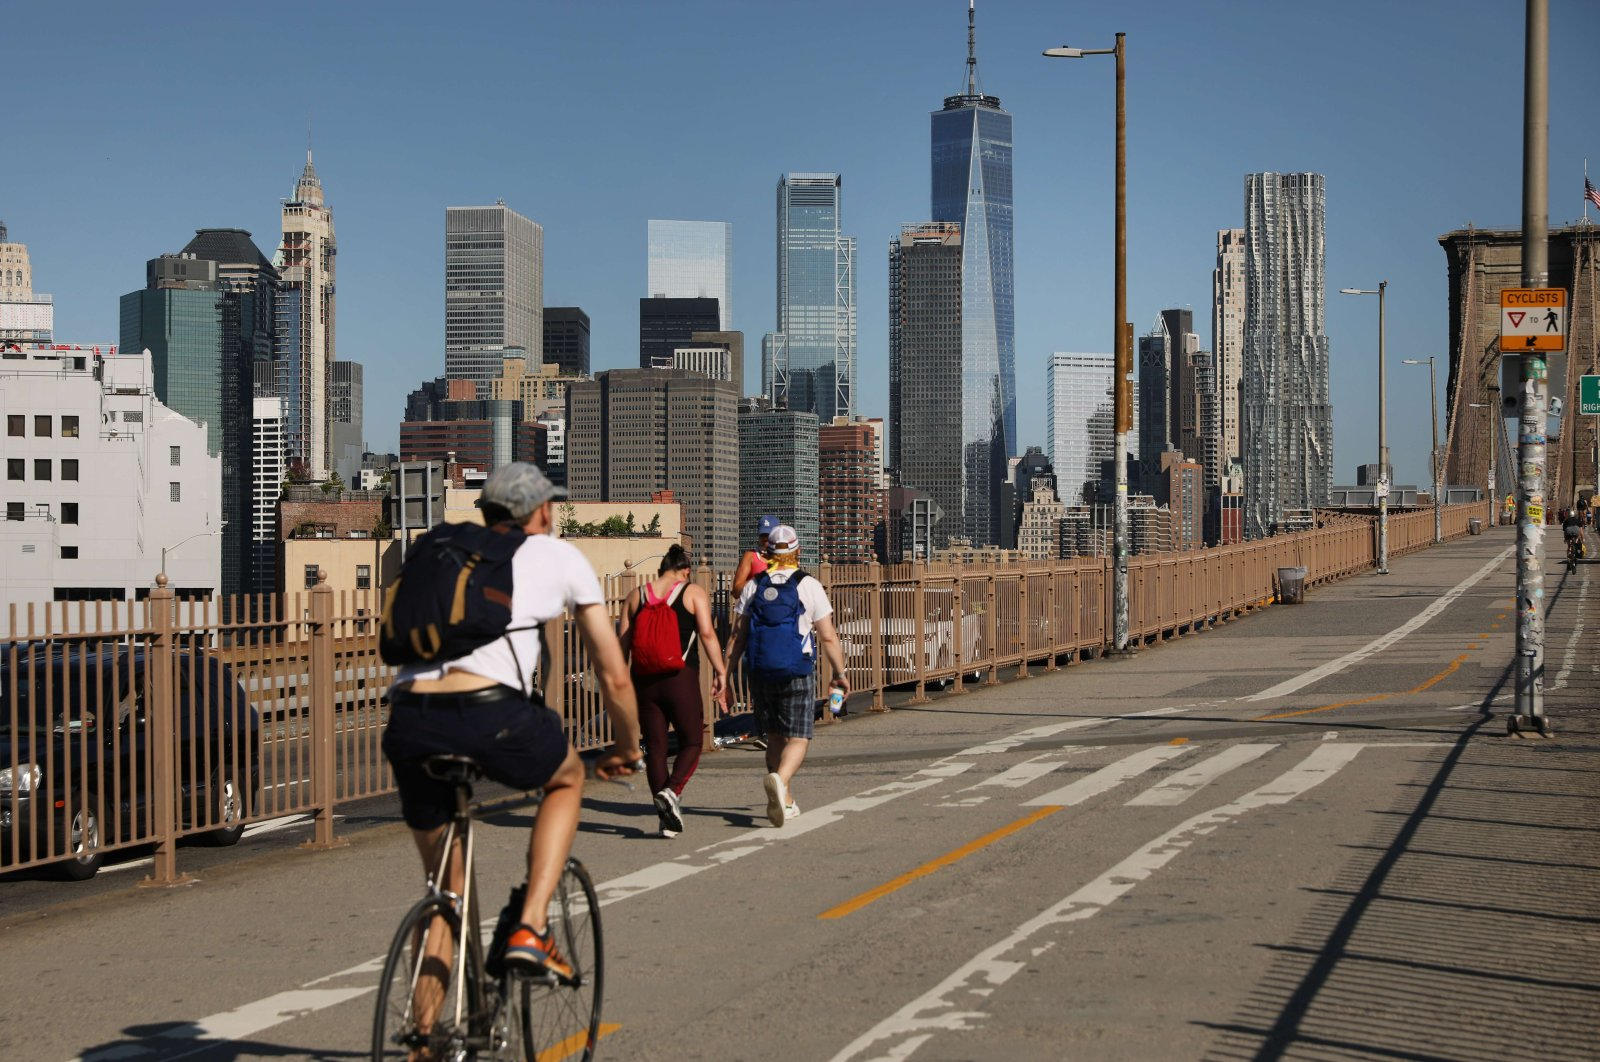 People are seen at the Brooklyn Bridge as Manhattan enters Phase 2 of reopening following restrictions imposed to curb the coronavirus pandemic, in New York, June 22, 2020. (Getty Images via AFP)